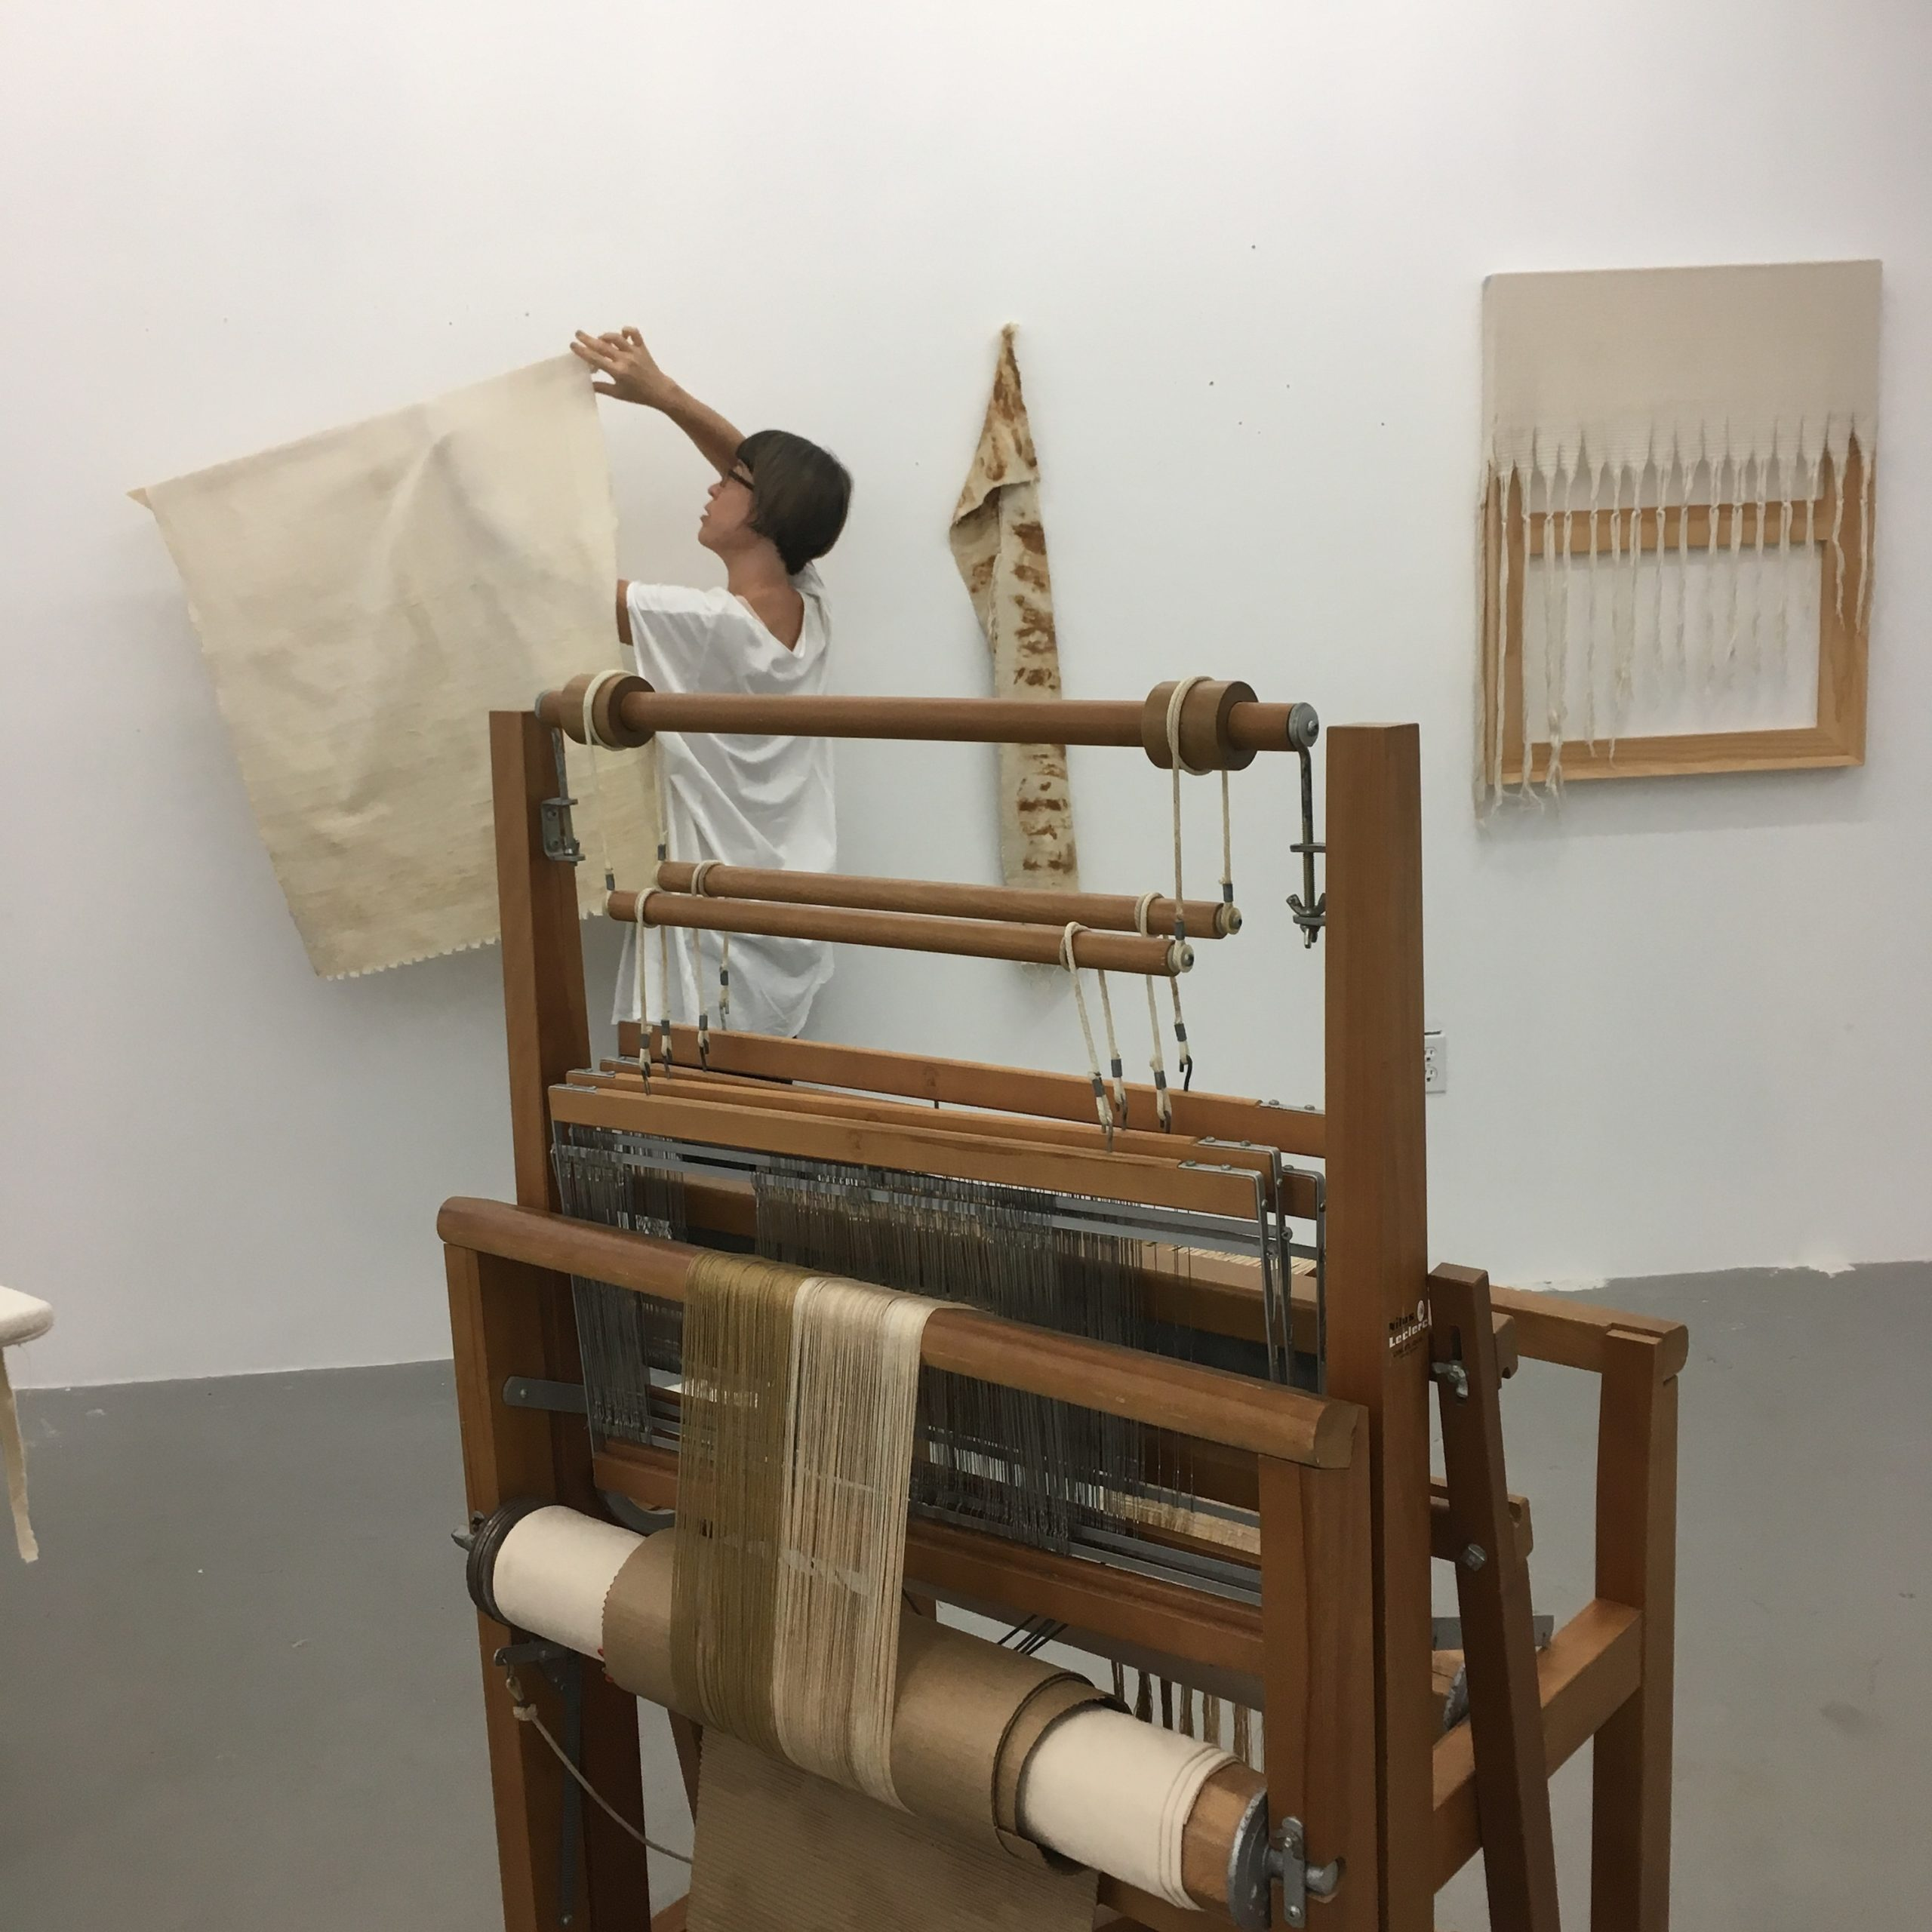 Frances Trombly installs her fabric sculpture in her studio.